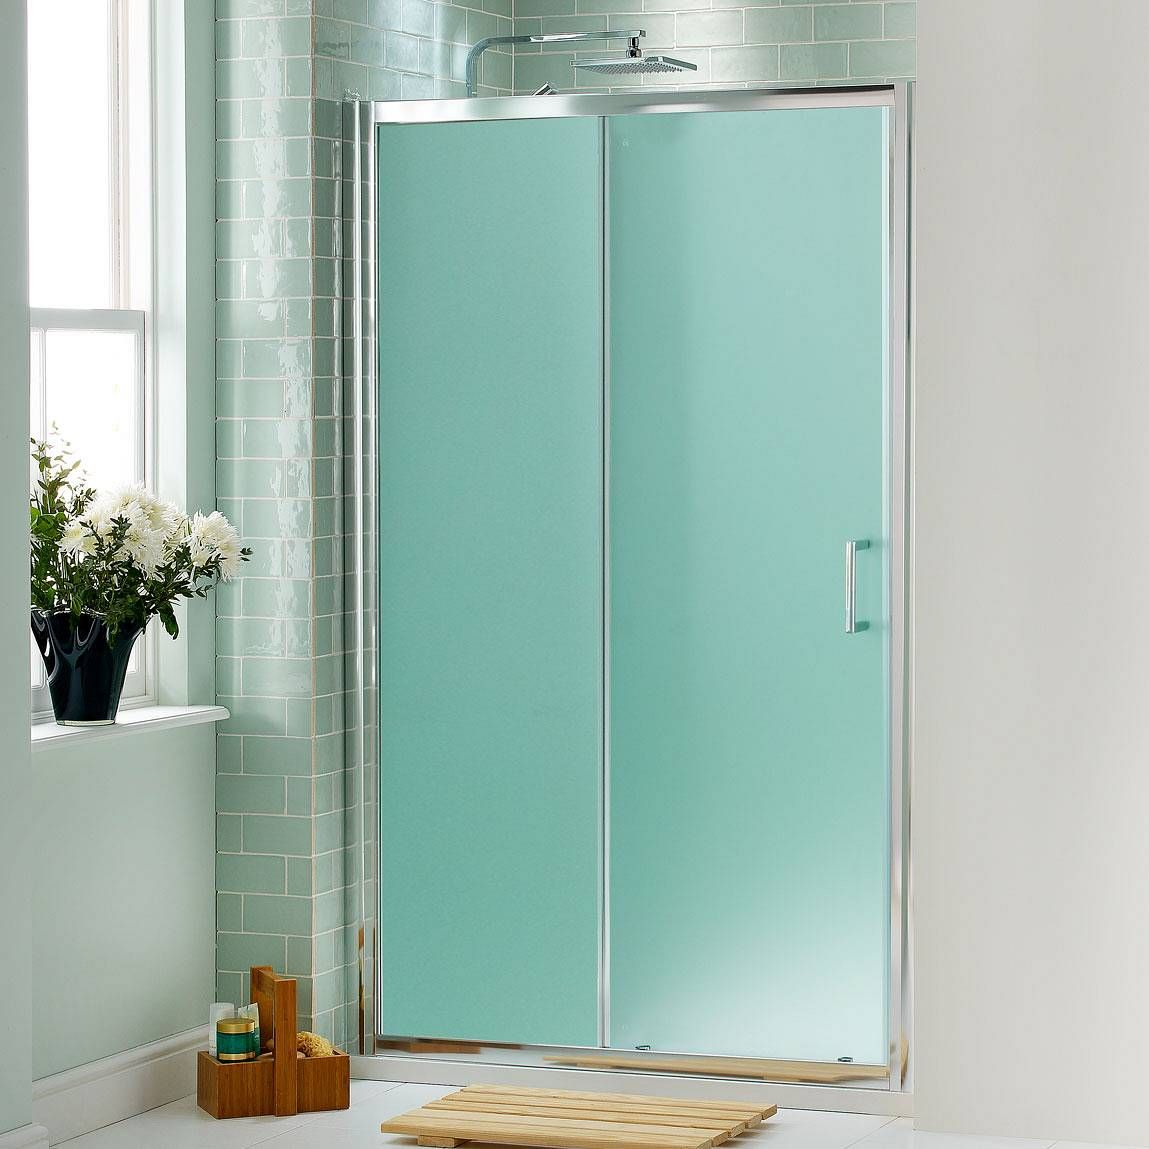 Frosted glass window bathroom - Incredible Frosted Glass Doors Inspirational Home Decor And Glass Bathroom Doors